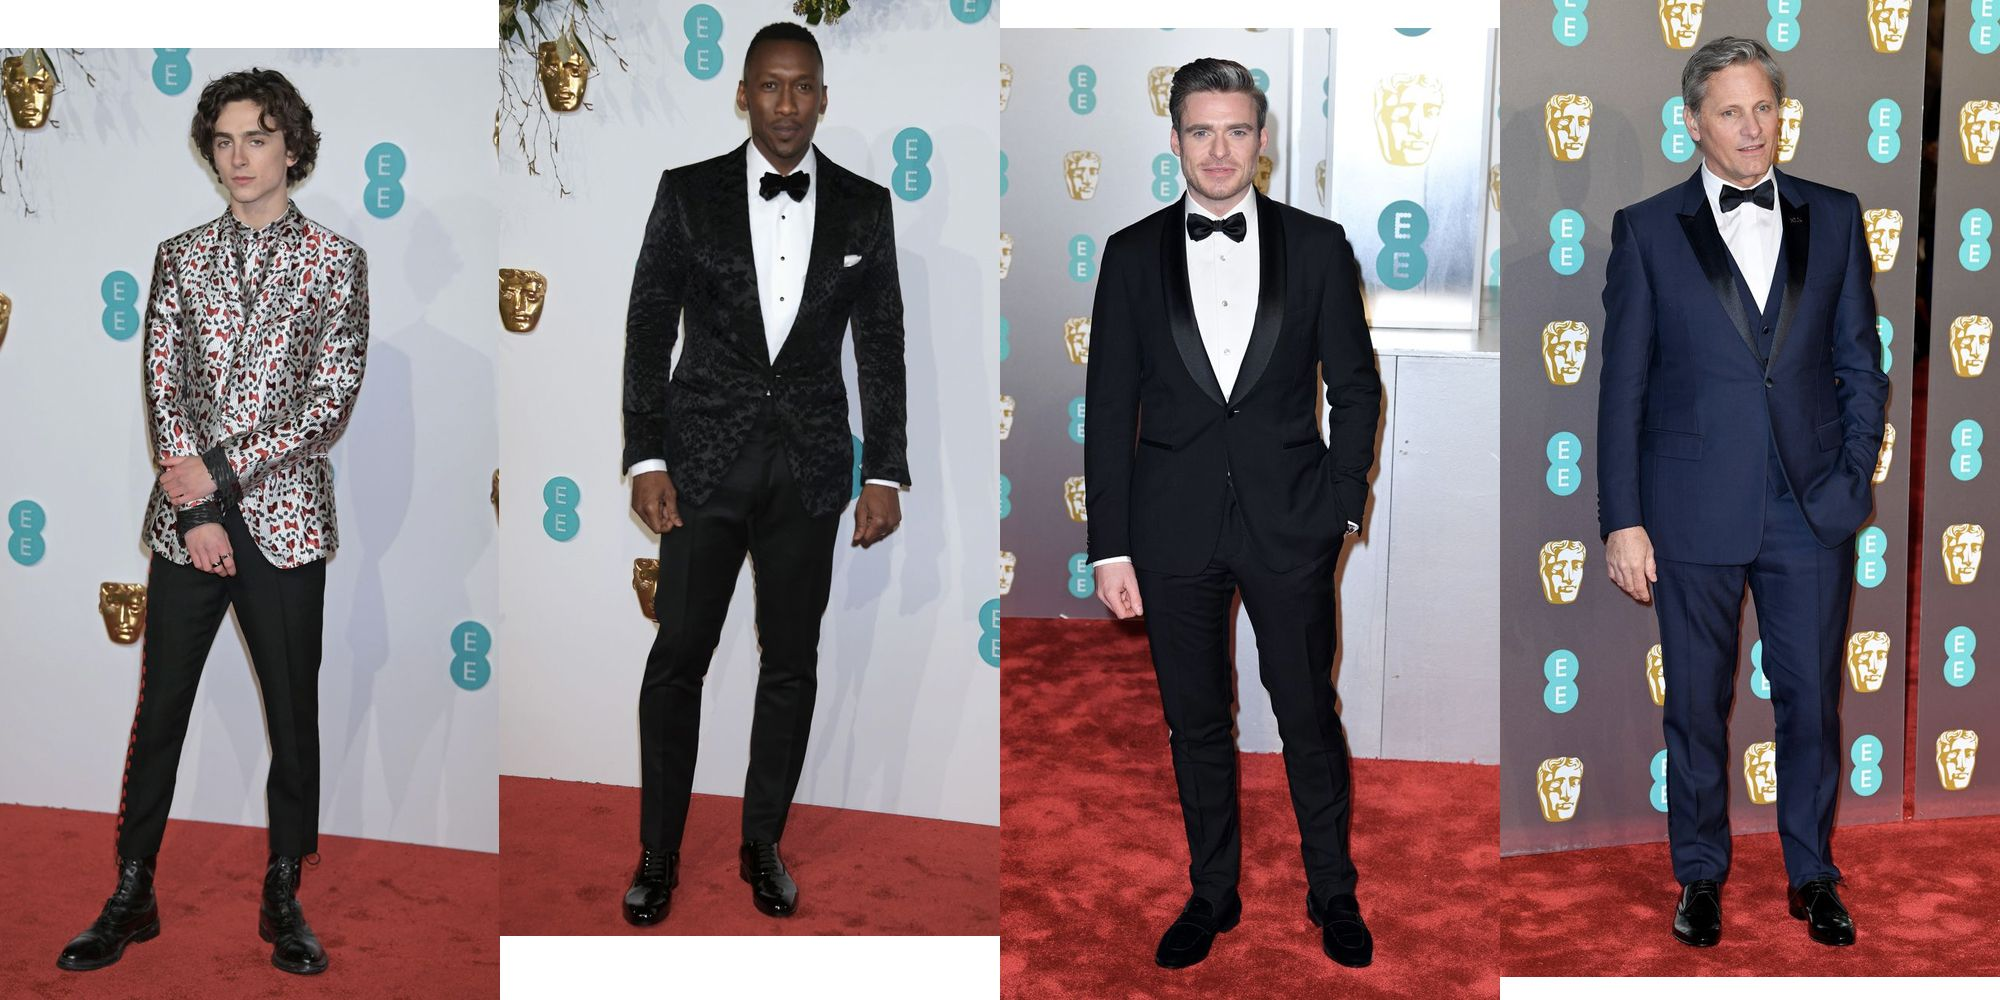 All The Best-Dressed Men From The BAFTA Awards 2019